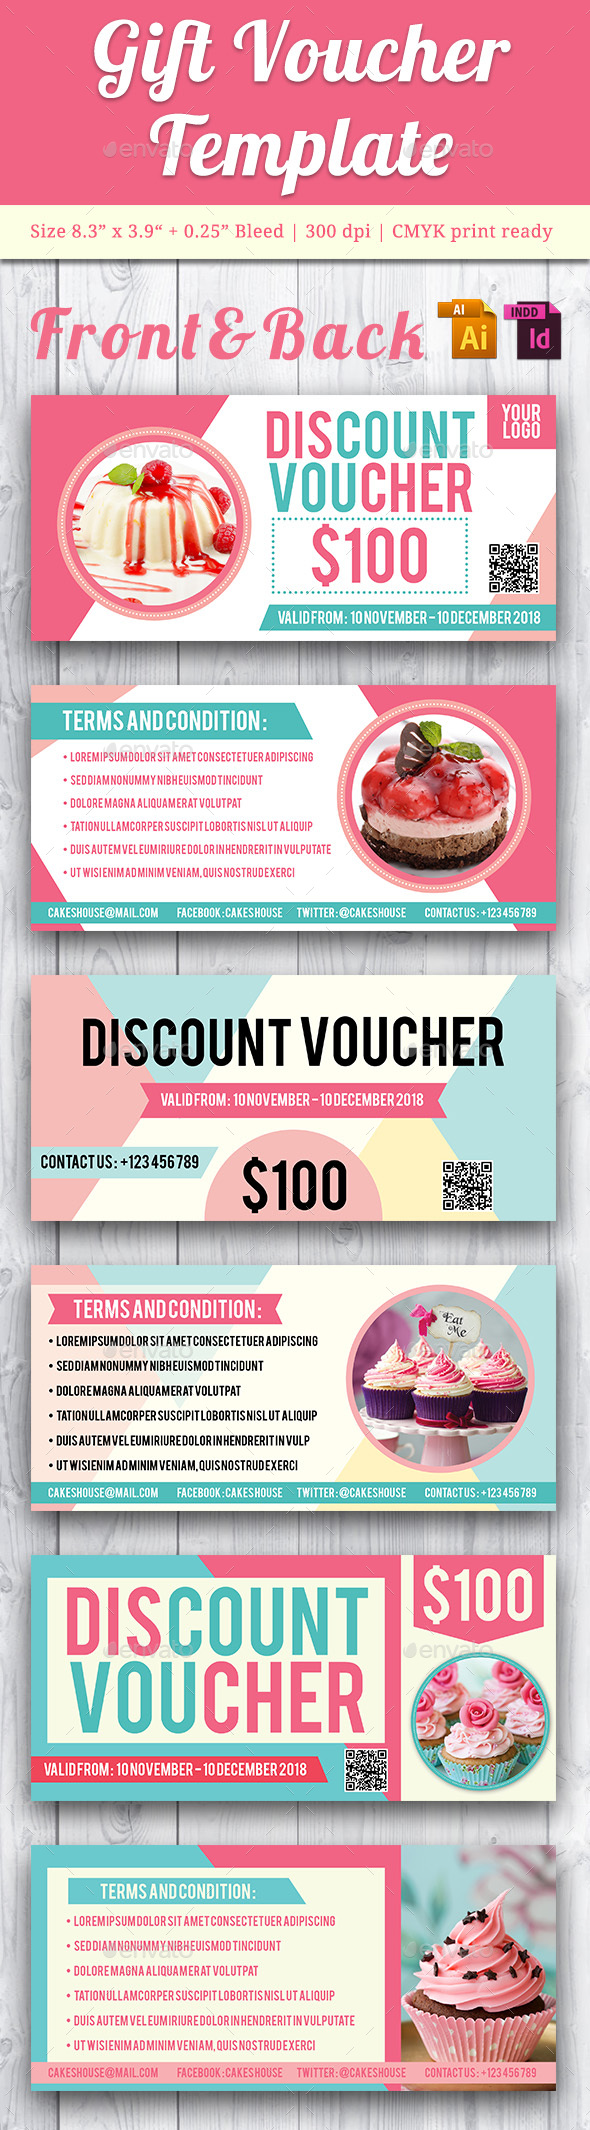 Gift Voucher Template - Vol. 5 - Cards & Invites Print Templates